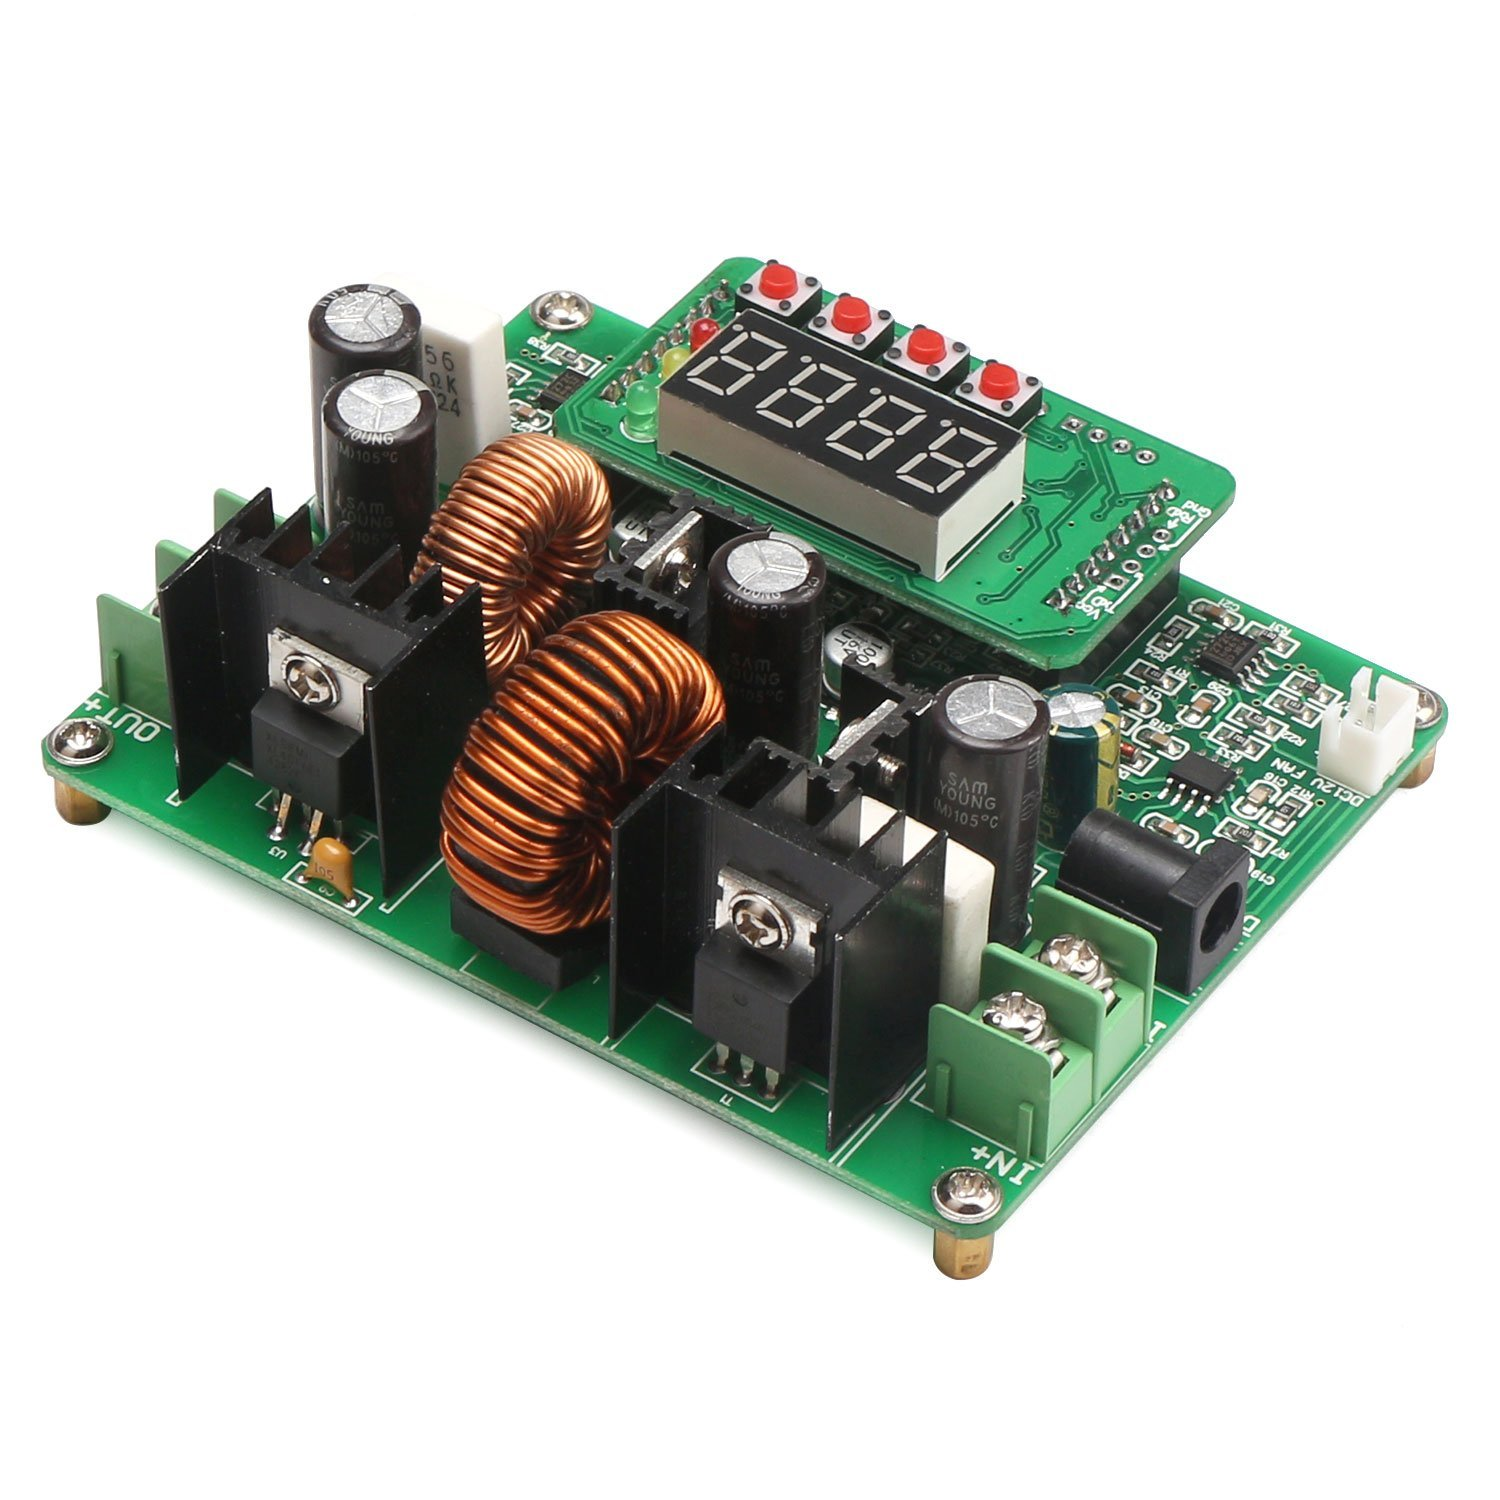 Drok Numerical Control Buck Boost Converter Voltage Lm317 Short Circuit Protection Regulator 25 Pcsneweggcom Electronics